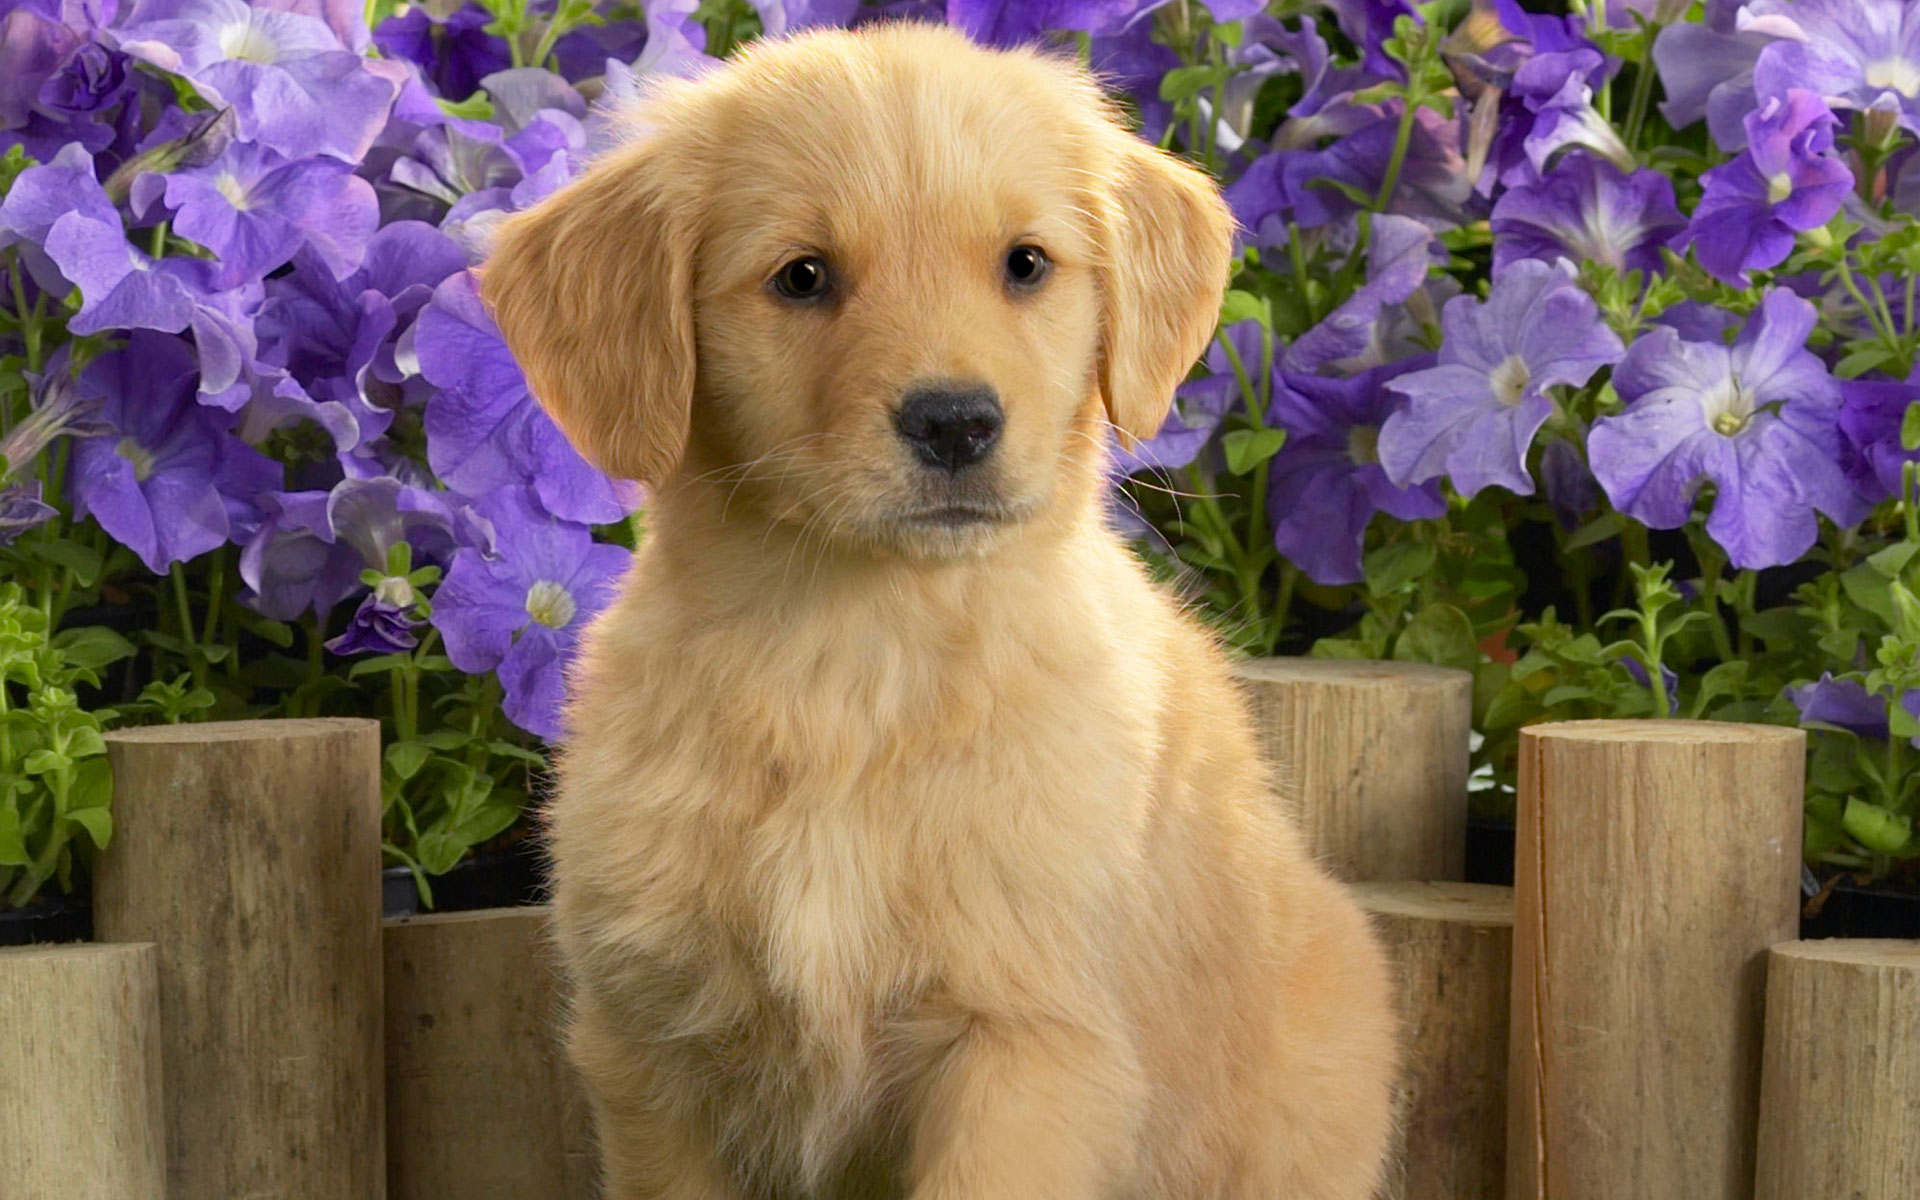 Yellow Labrador Puppy6128210937 - Yellow Labrador Puppy - yellow, Wake, Puppy, Labrador